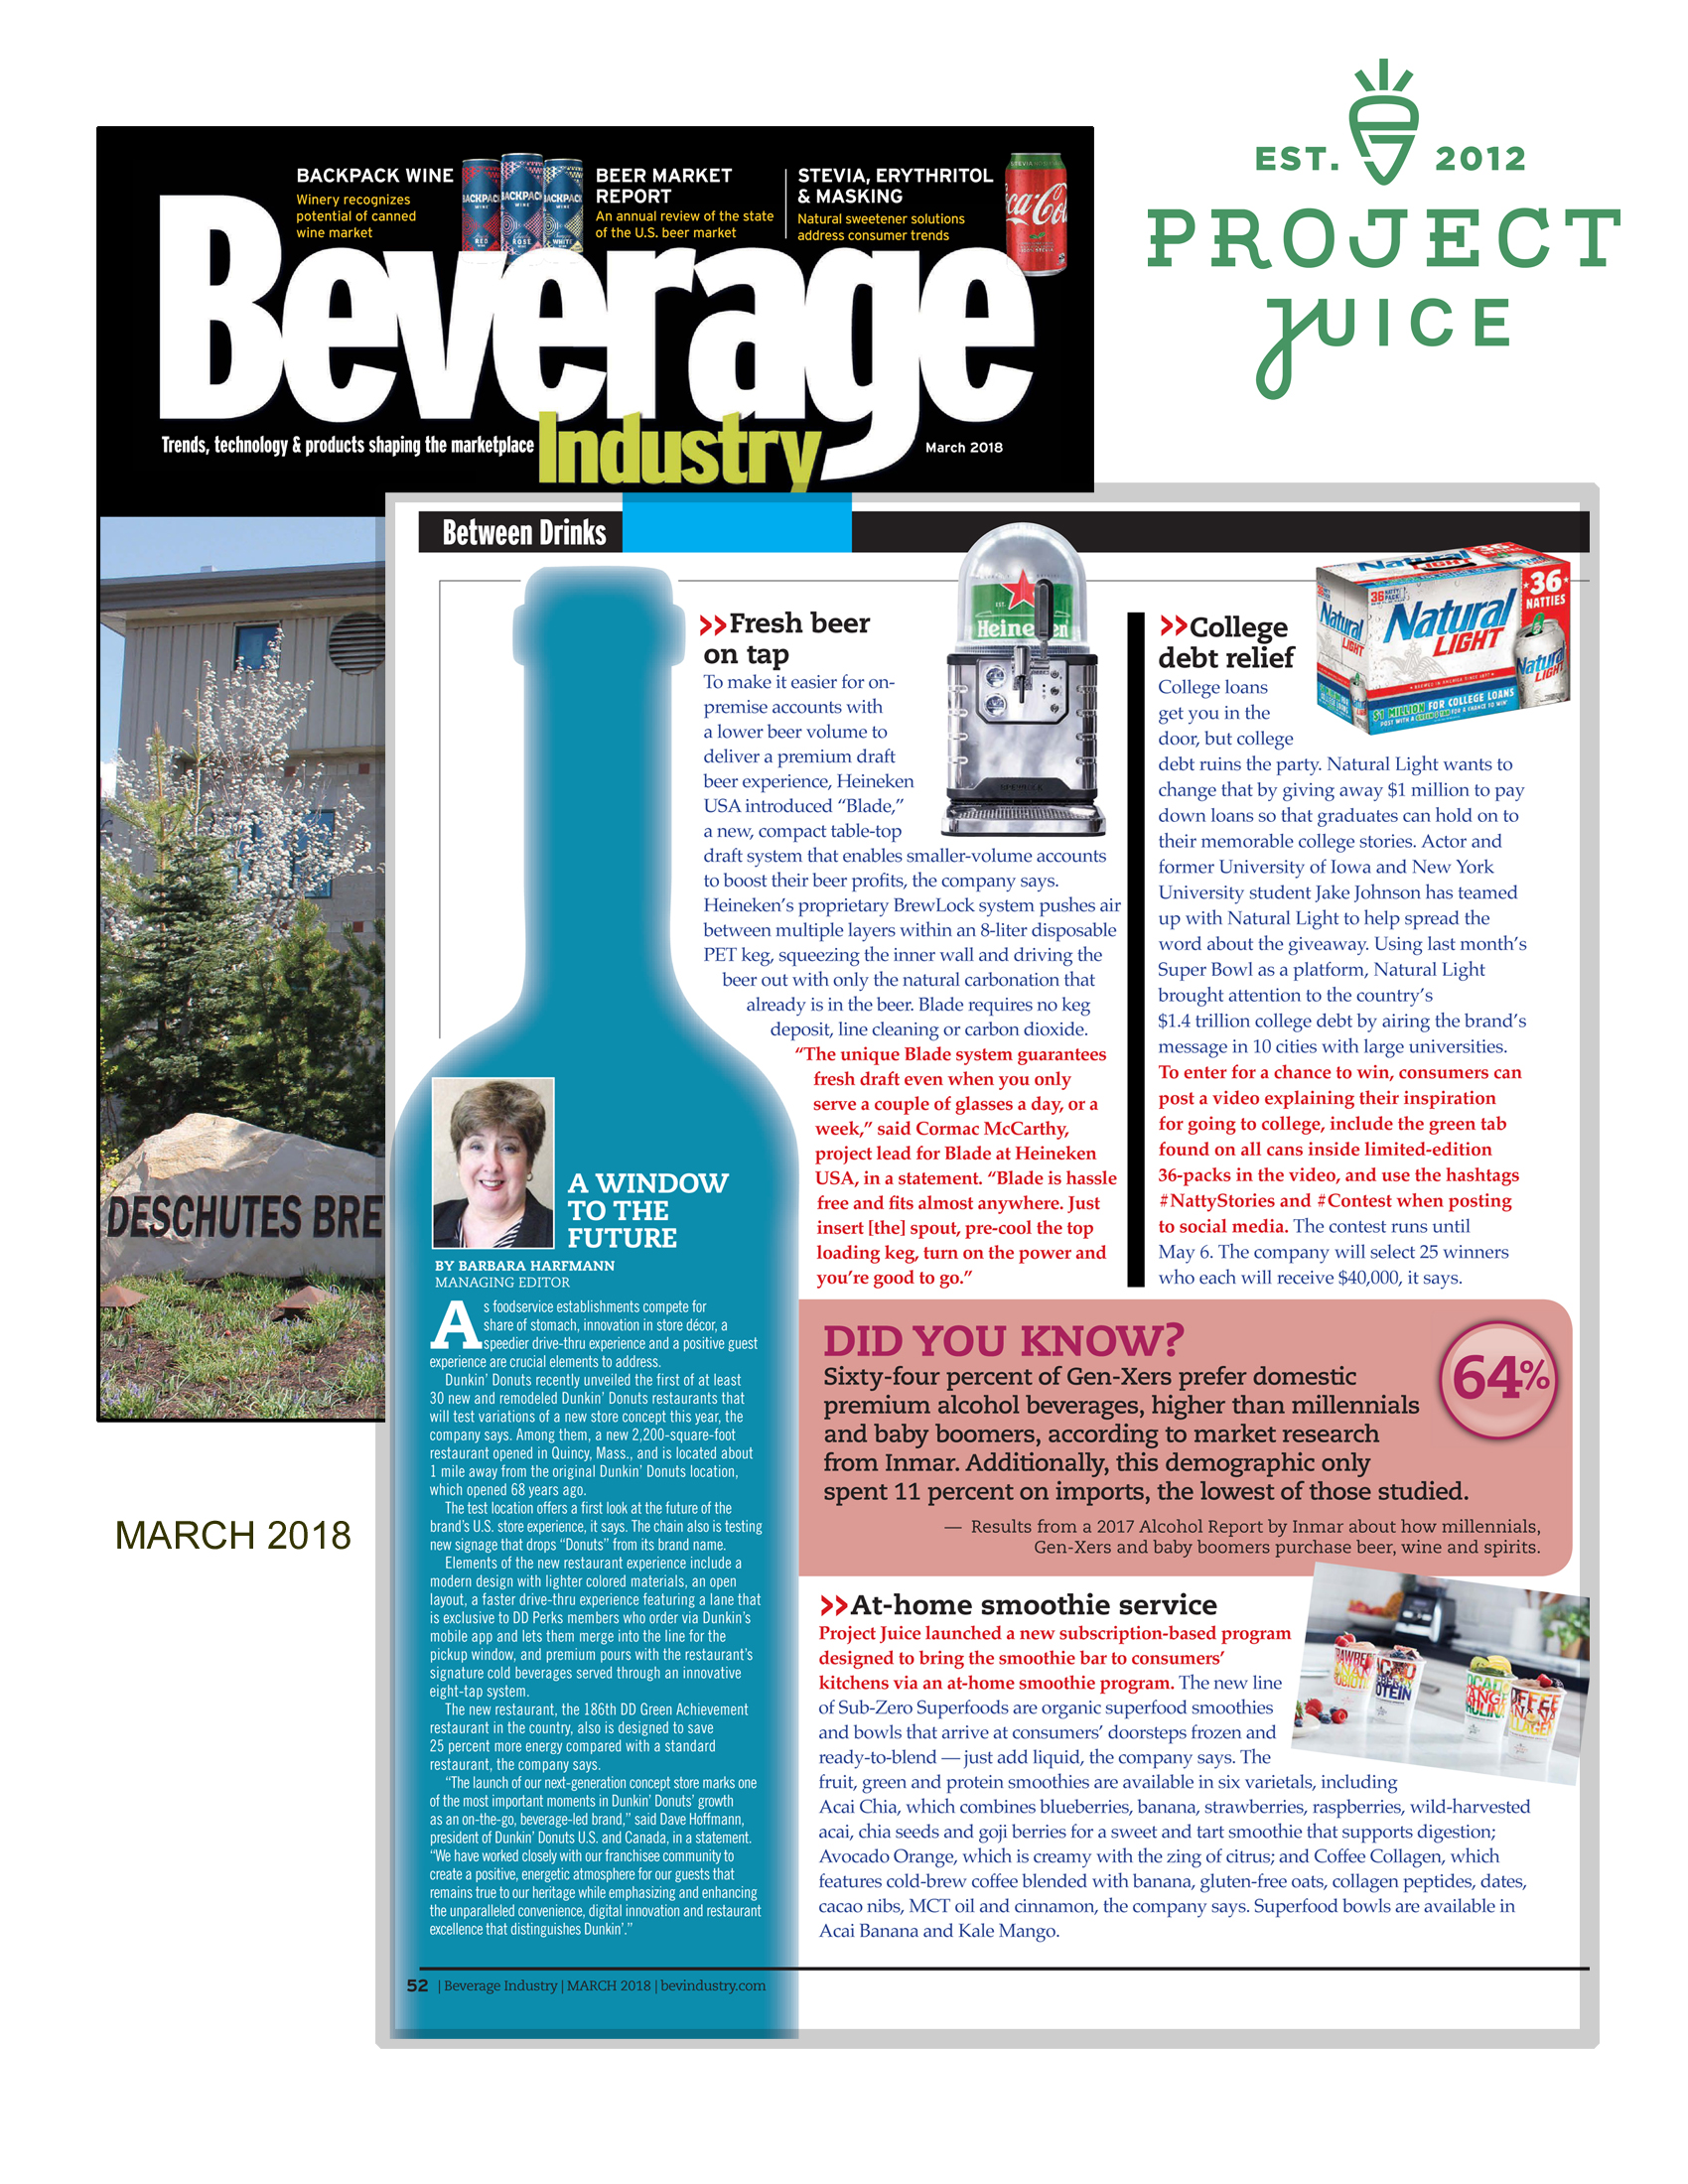 BEVERAGEINDUSTRYPRINT_MARCH2018.jpg